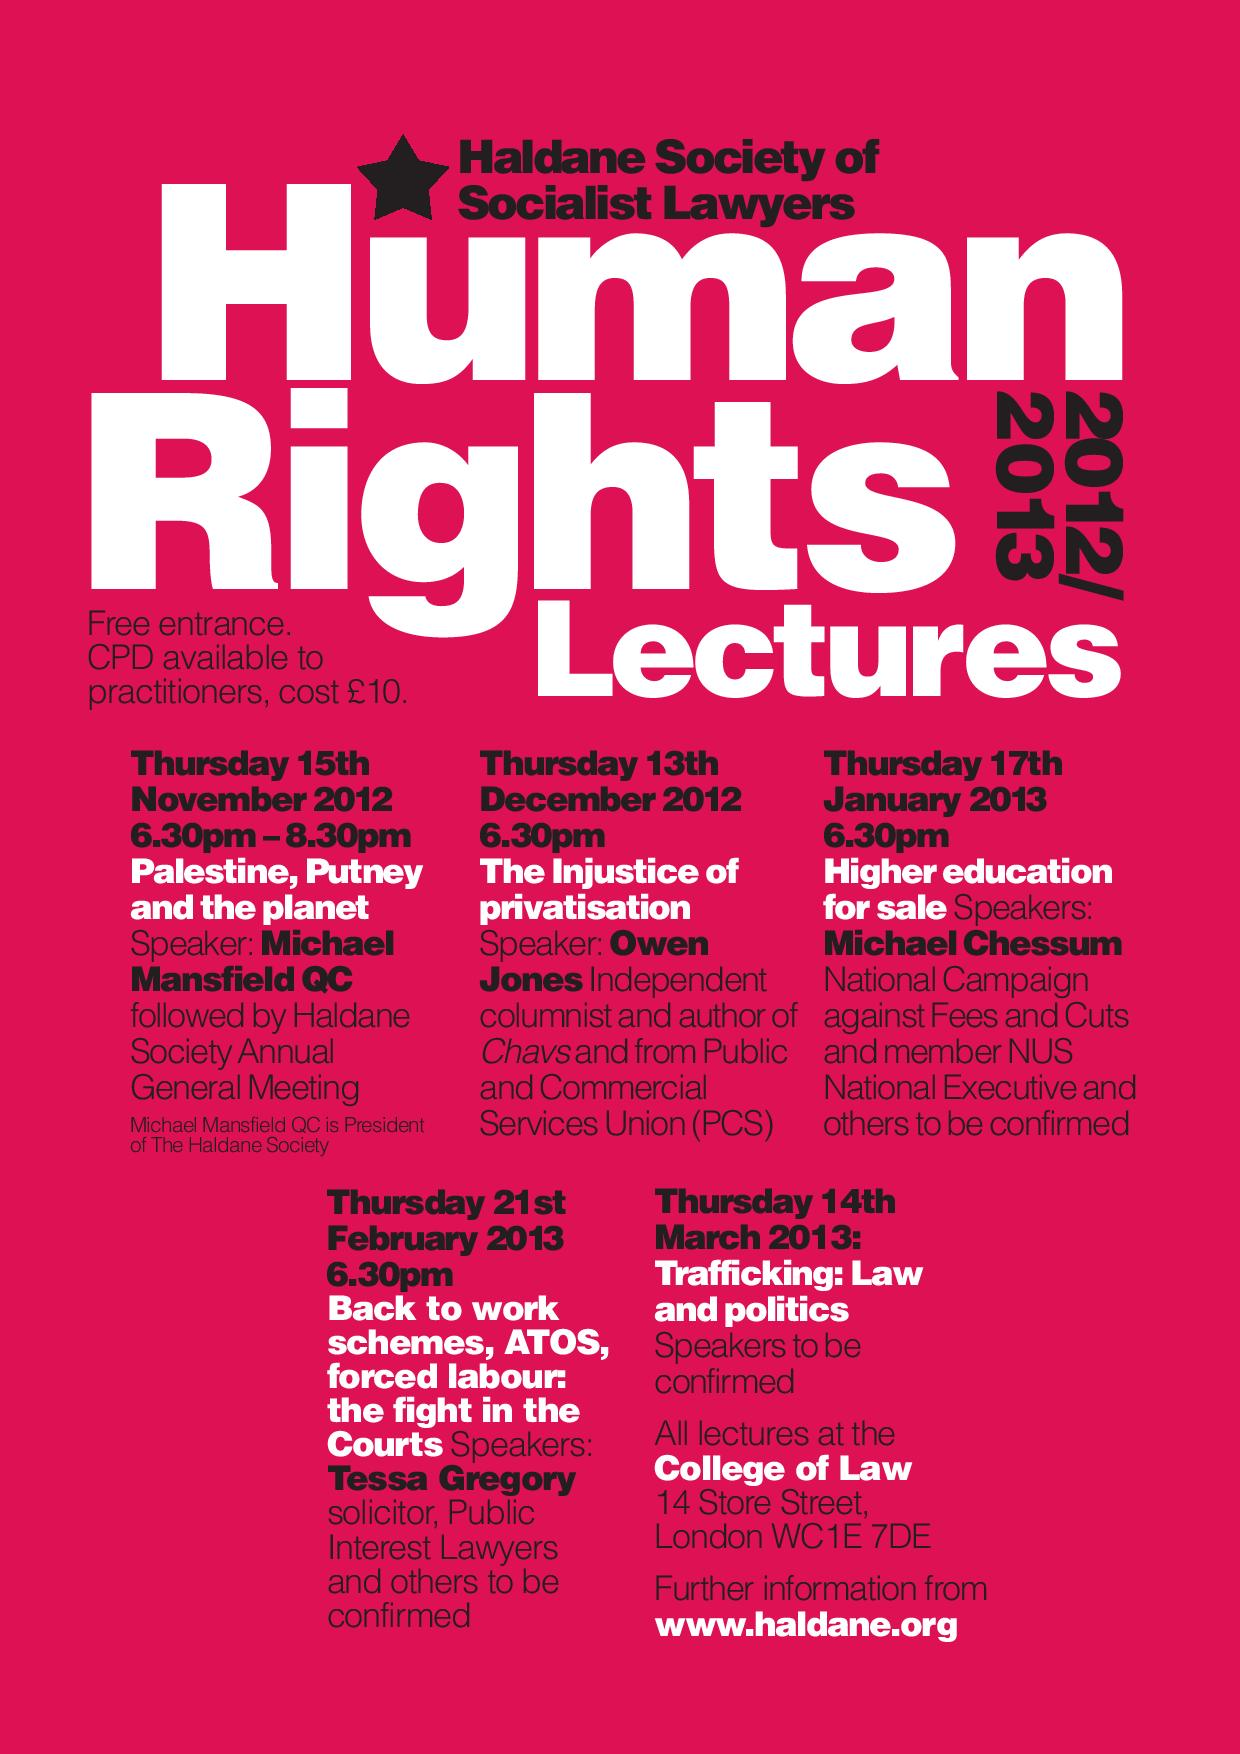 The image in this article contains information on the lecture series, and is a link to the lectures page of this website.